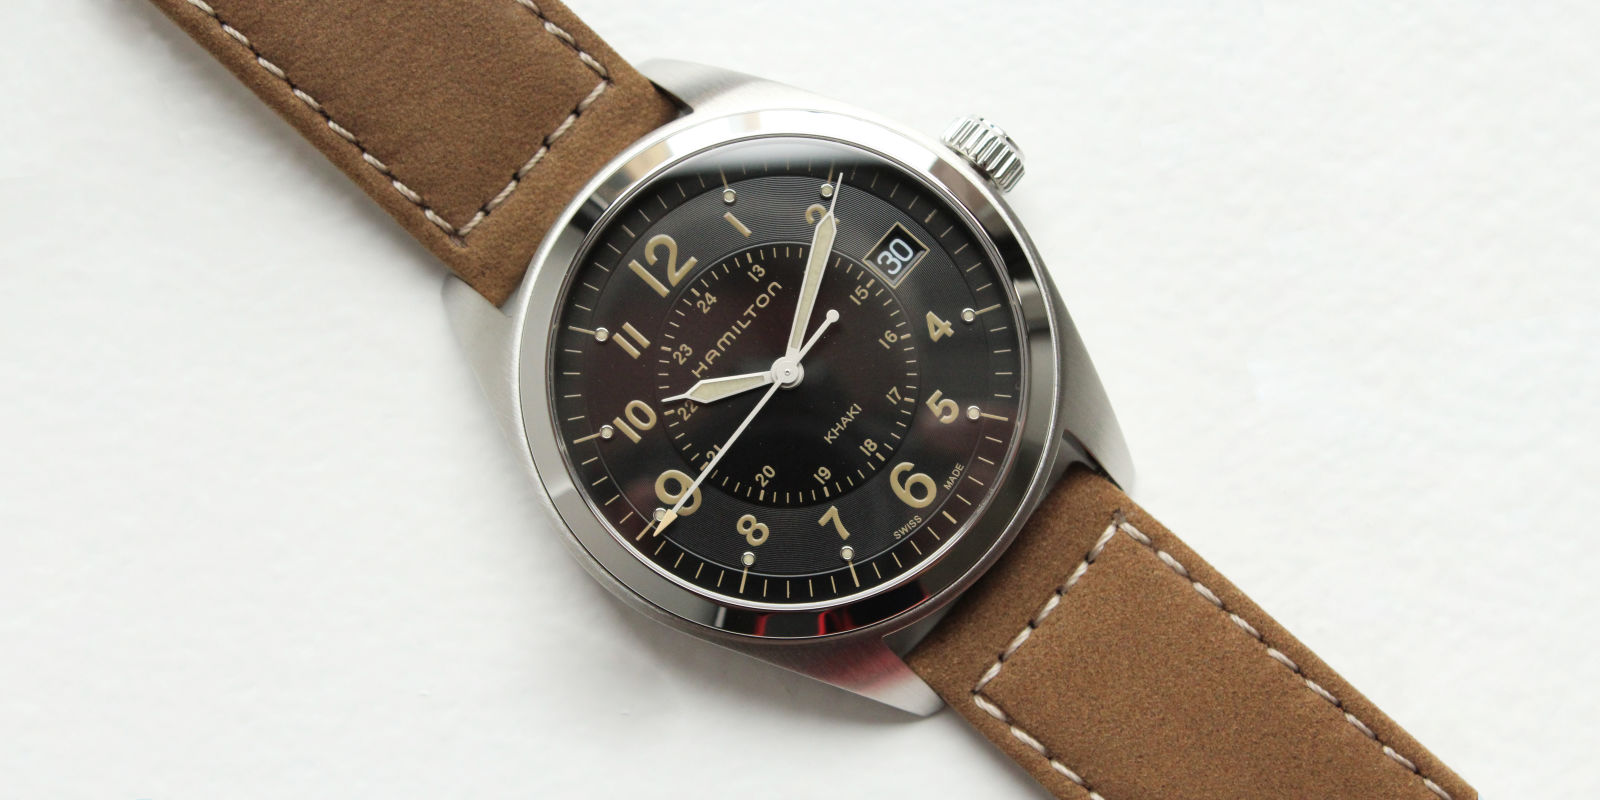 Enter Our Sweepstakes For A Chance To Win A Hamilton Khaki